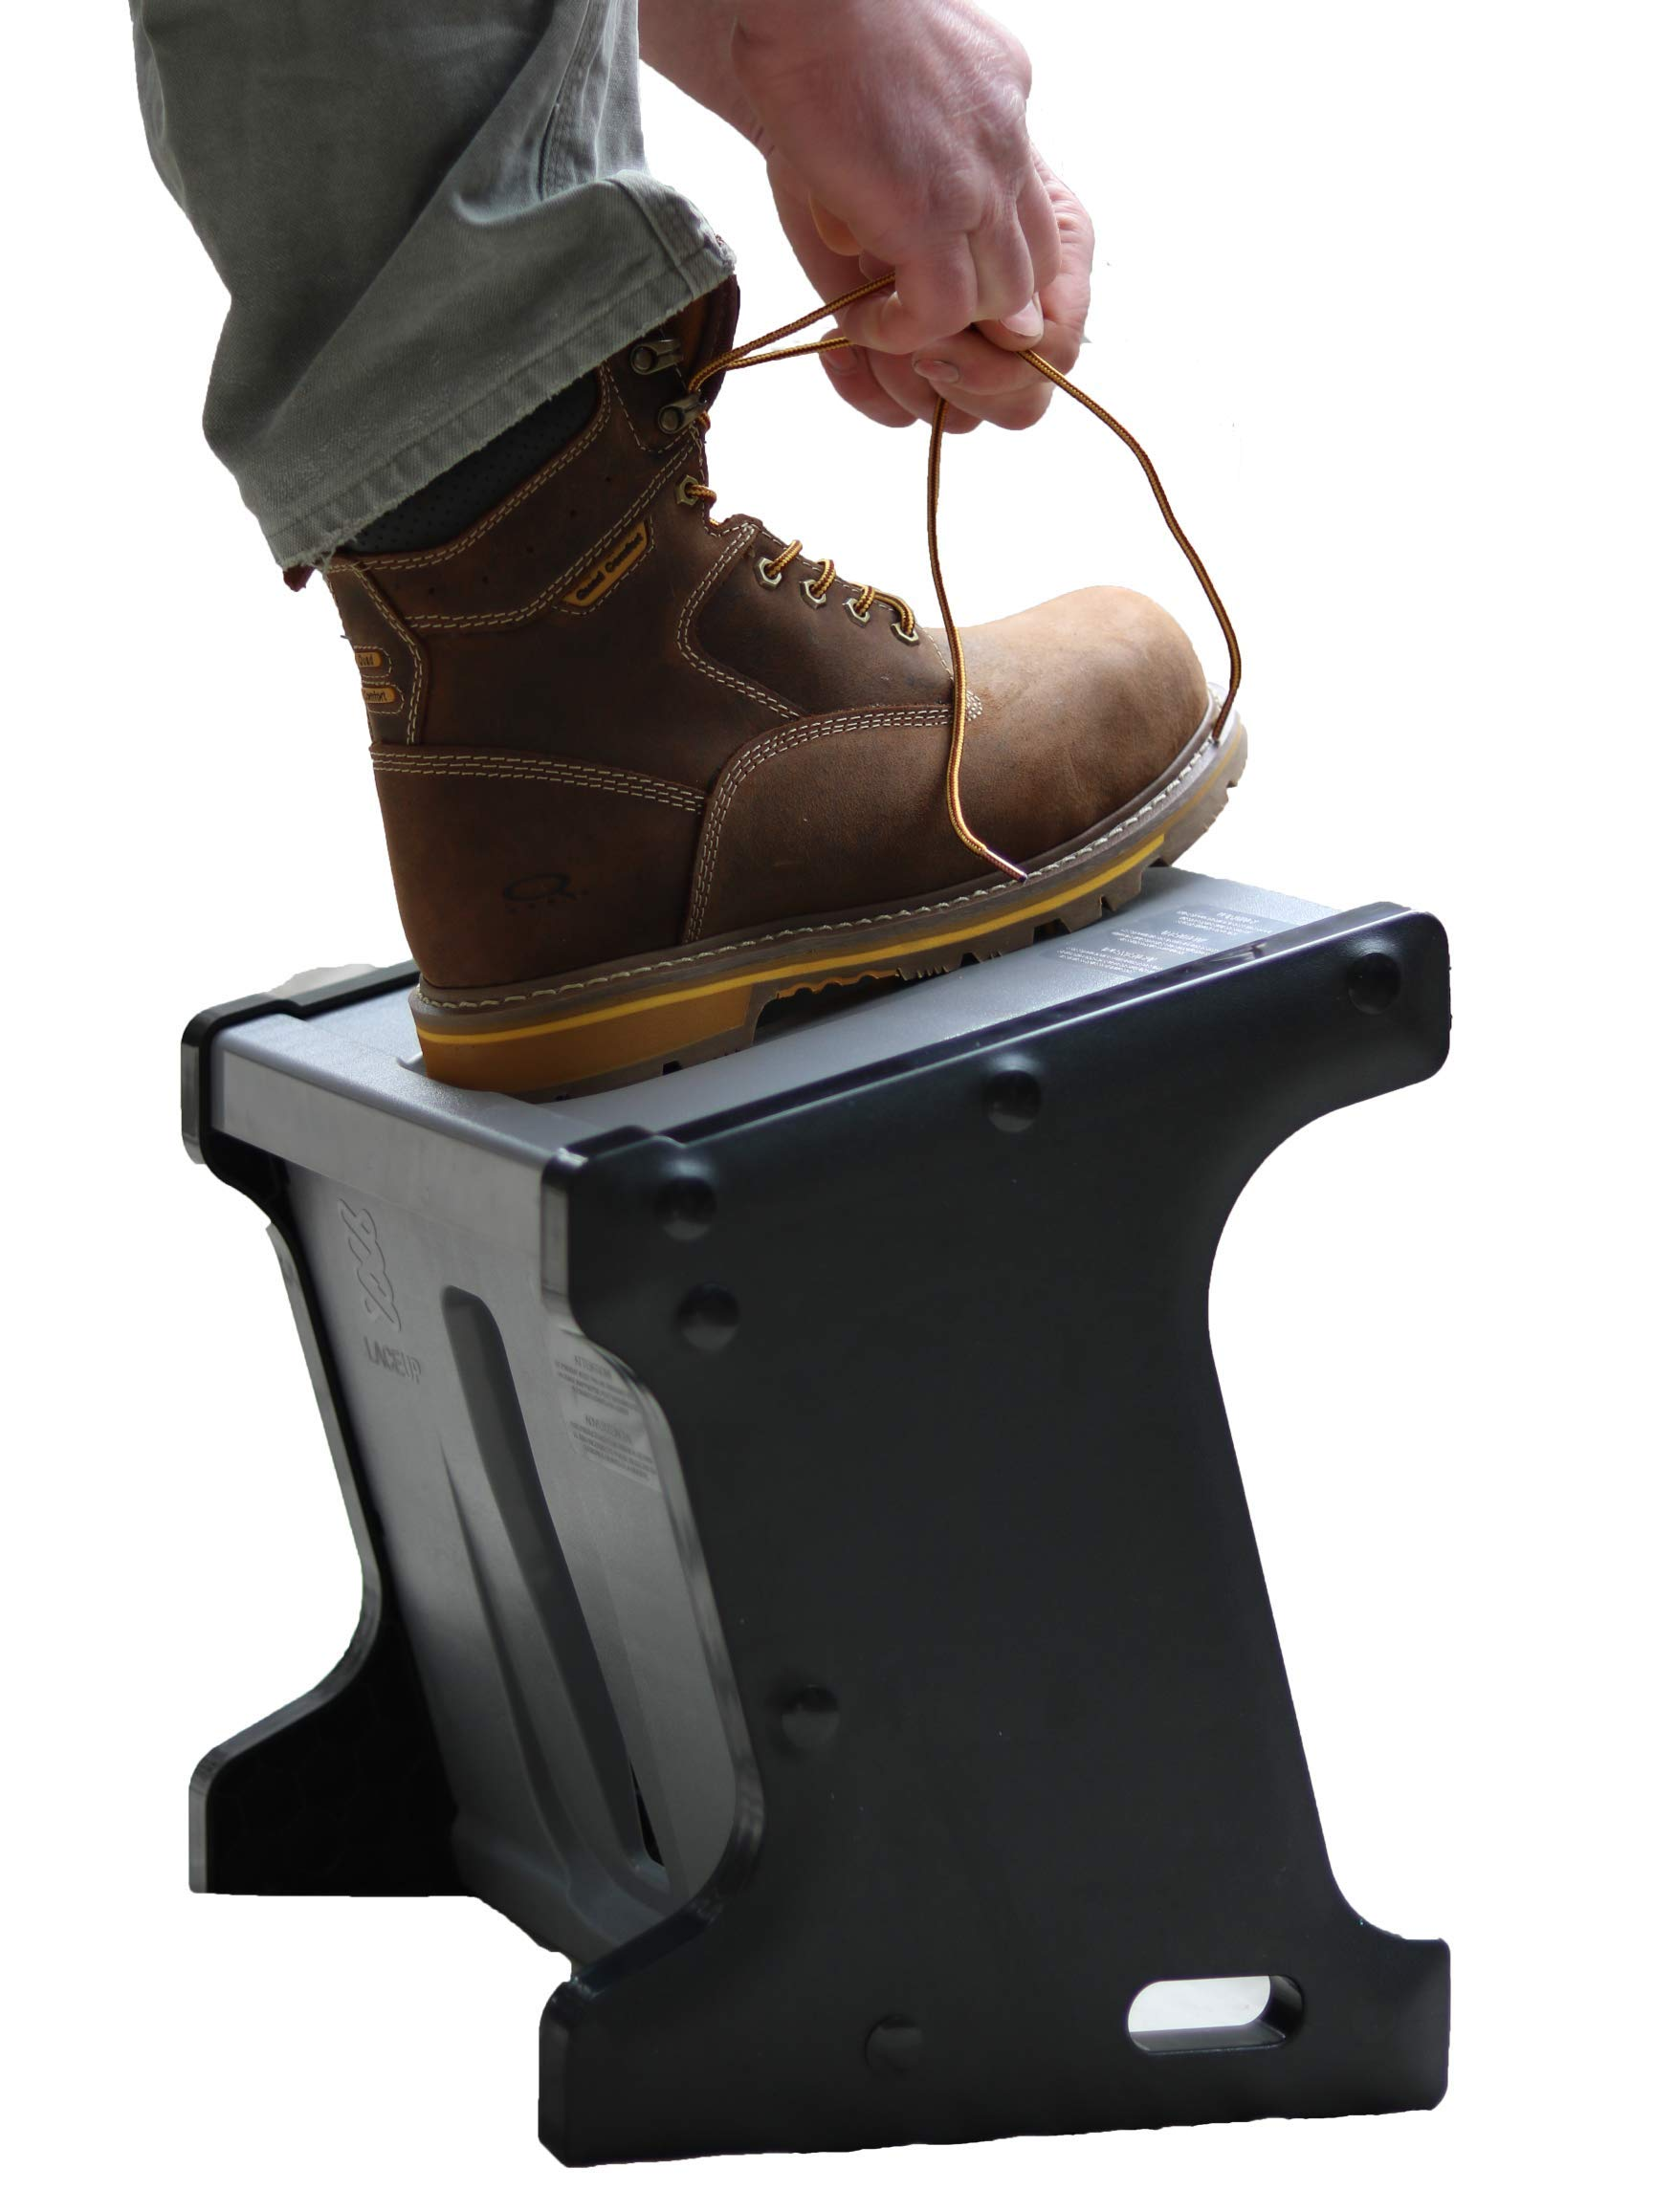 Practice Good Ergonomics! Lace Up Work Boots Safely. Athletic Foot wear - Sock aid - Mobility Helper - Footcare/Pedicure. Brings Your Foot Within Reach. Keep Active, Stay Healthy. Makes A Great Gift!